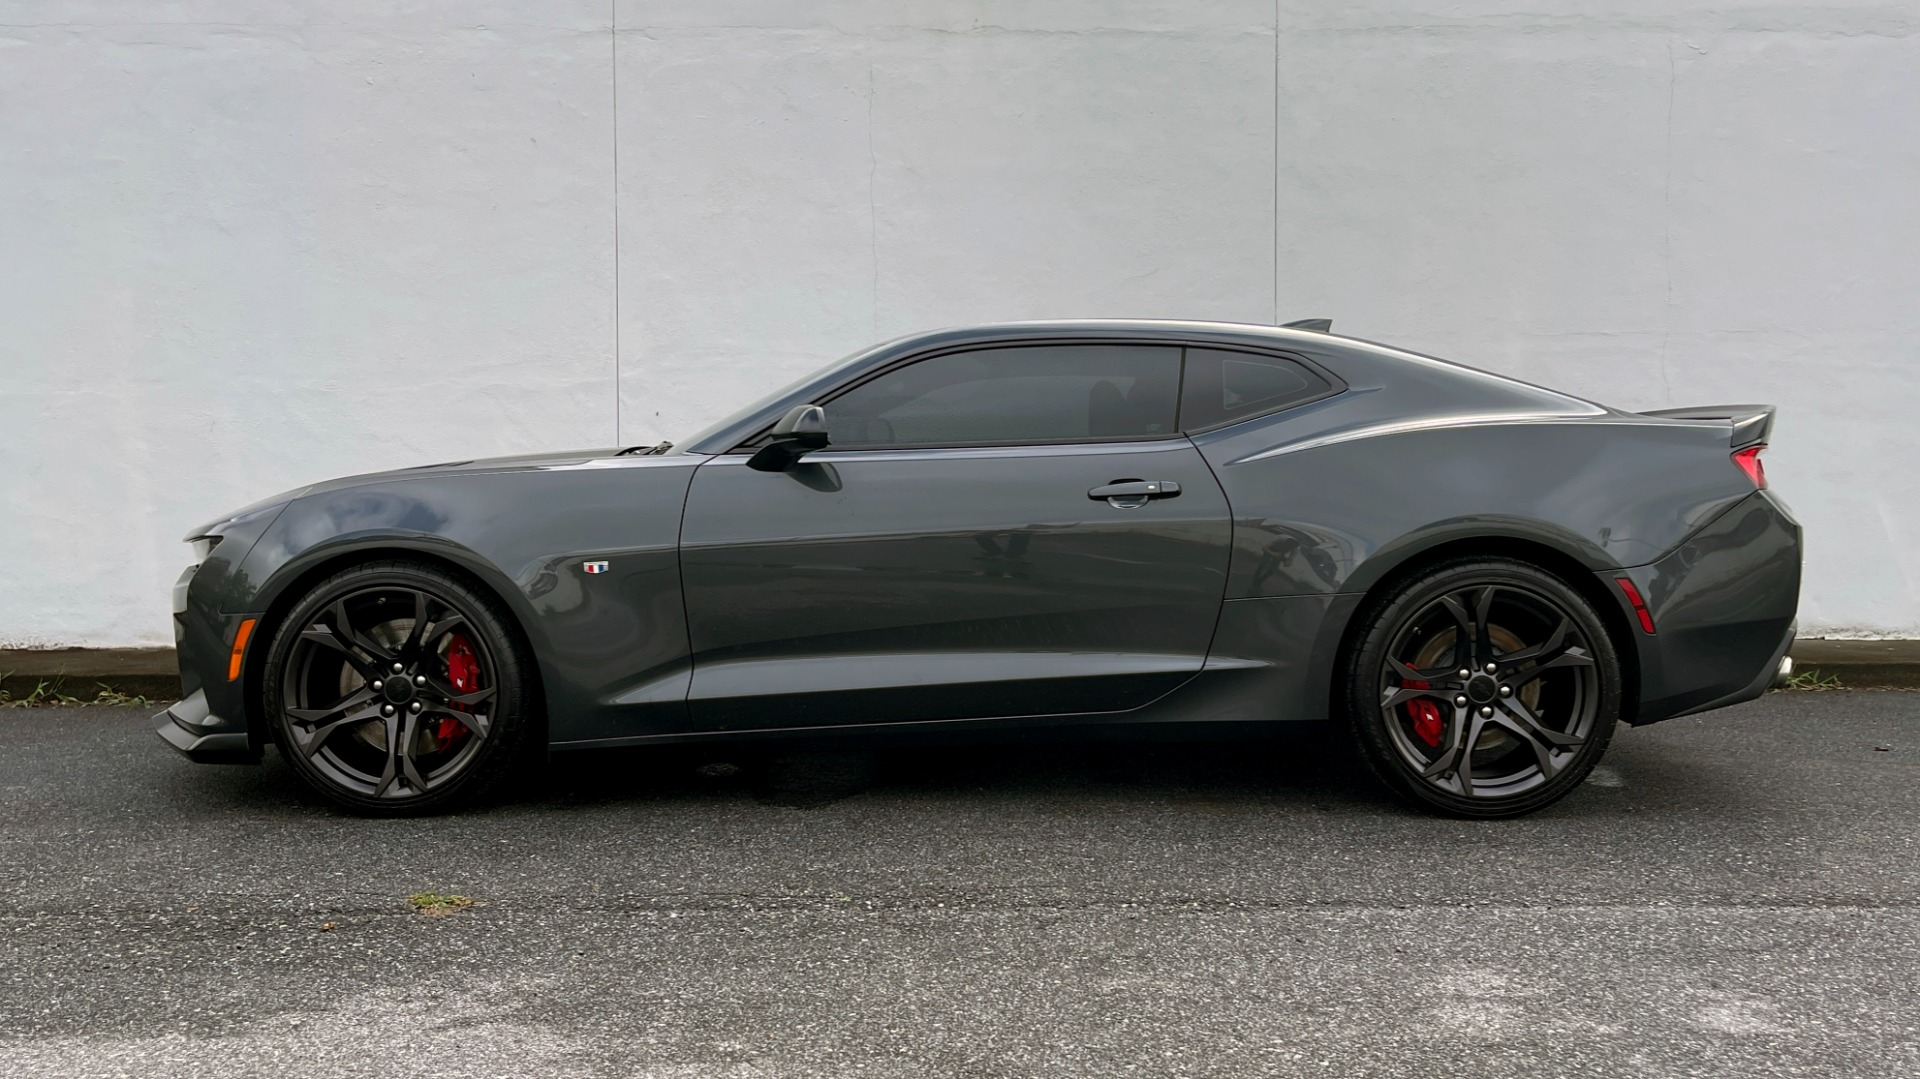 Used 2018 Chevrolet CAMARO 2SS / 6.2L V8 / MANUAL / 1LE TRACK PKG / NAV / BOSE / REARVIEW for sale $39,795 at Formula Imports in Charlotte NC 28227 3